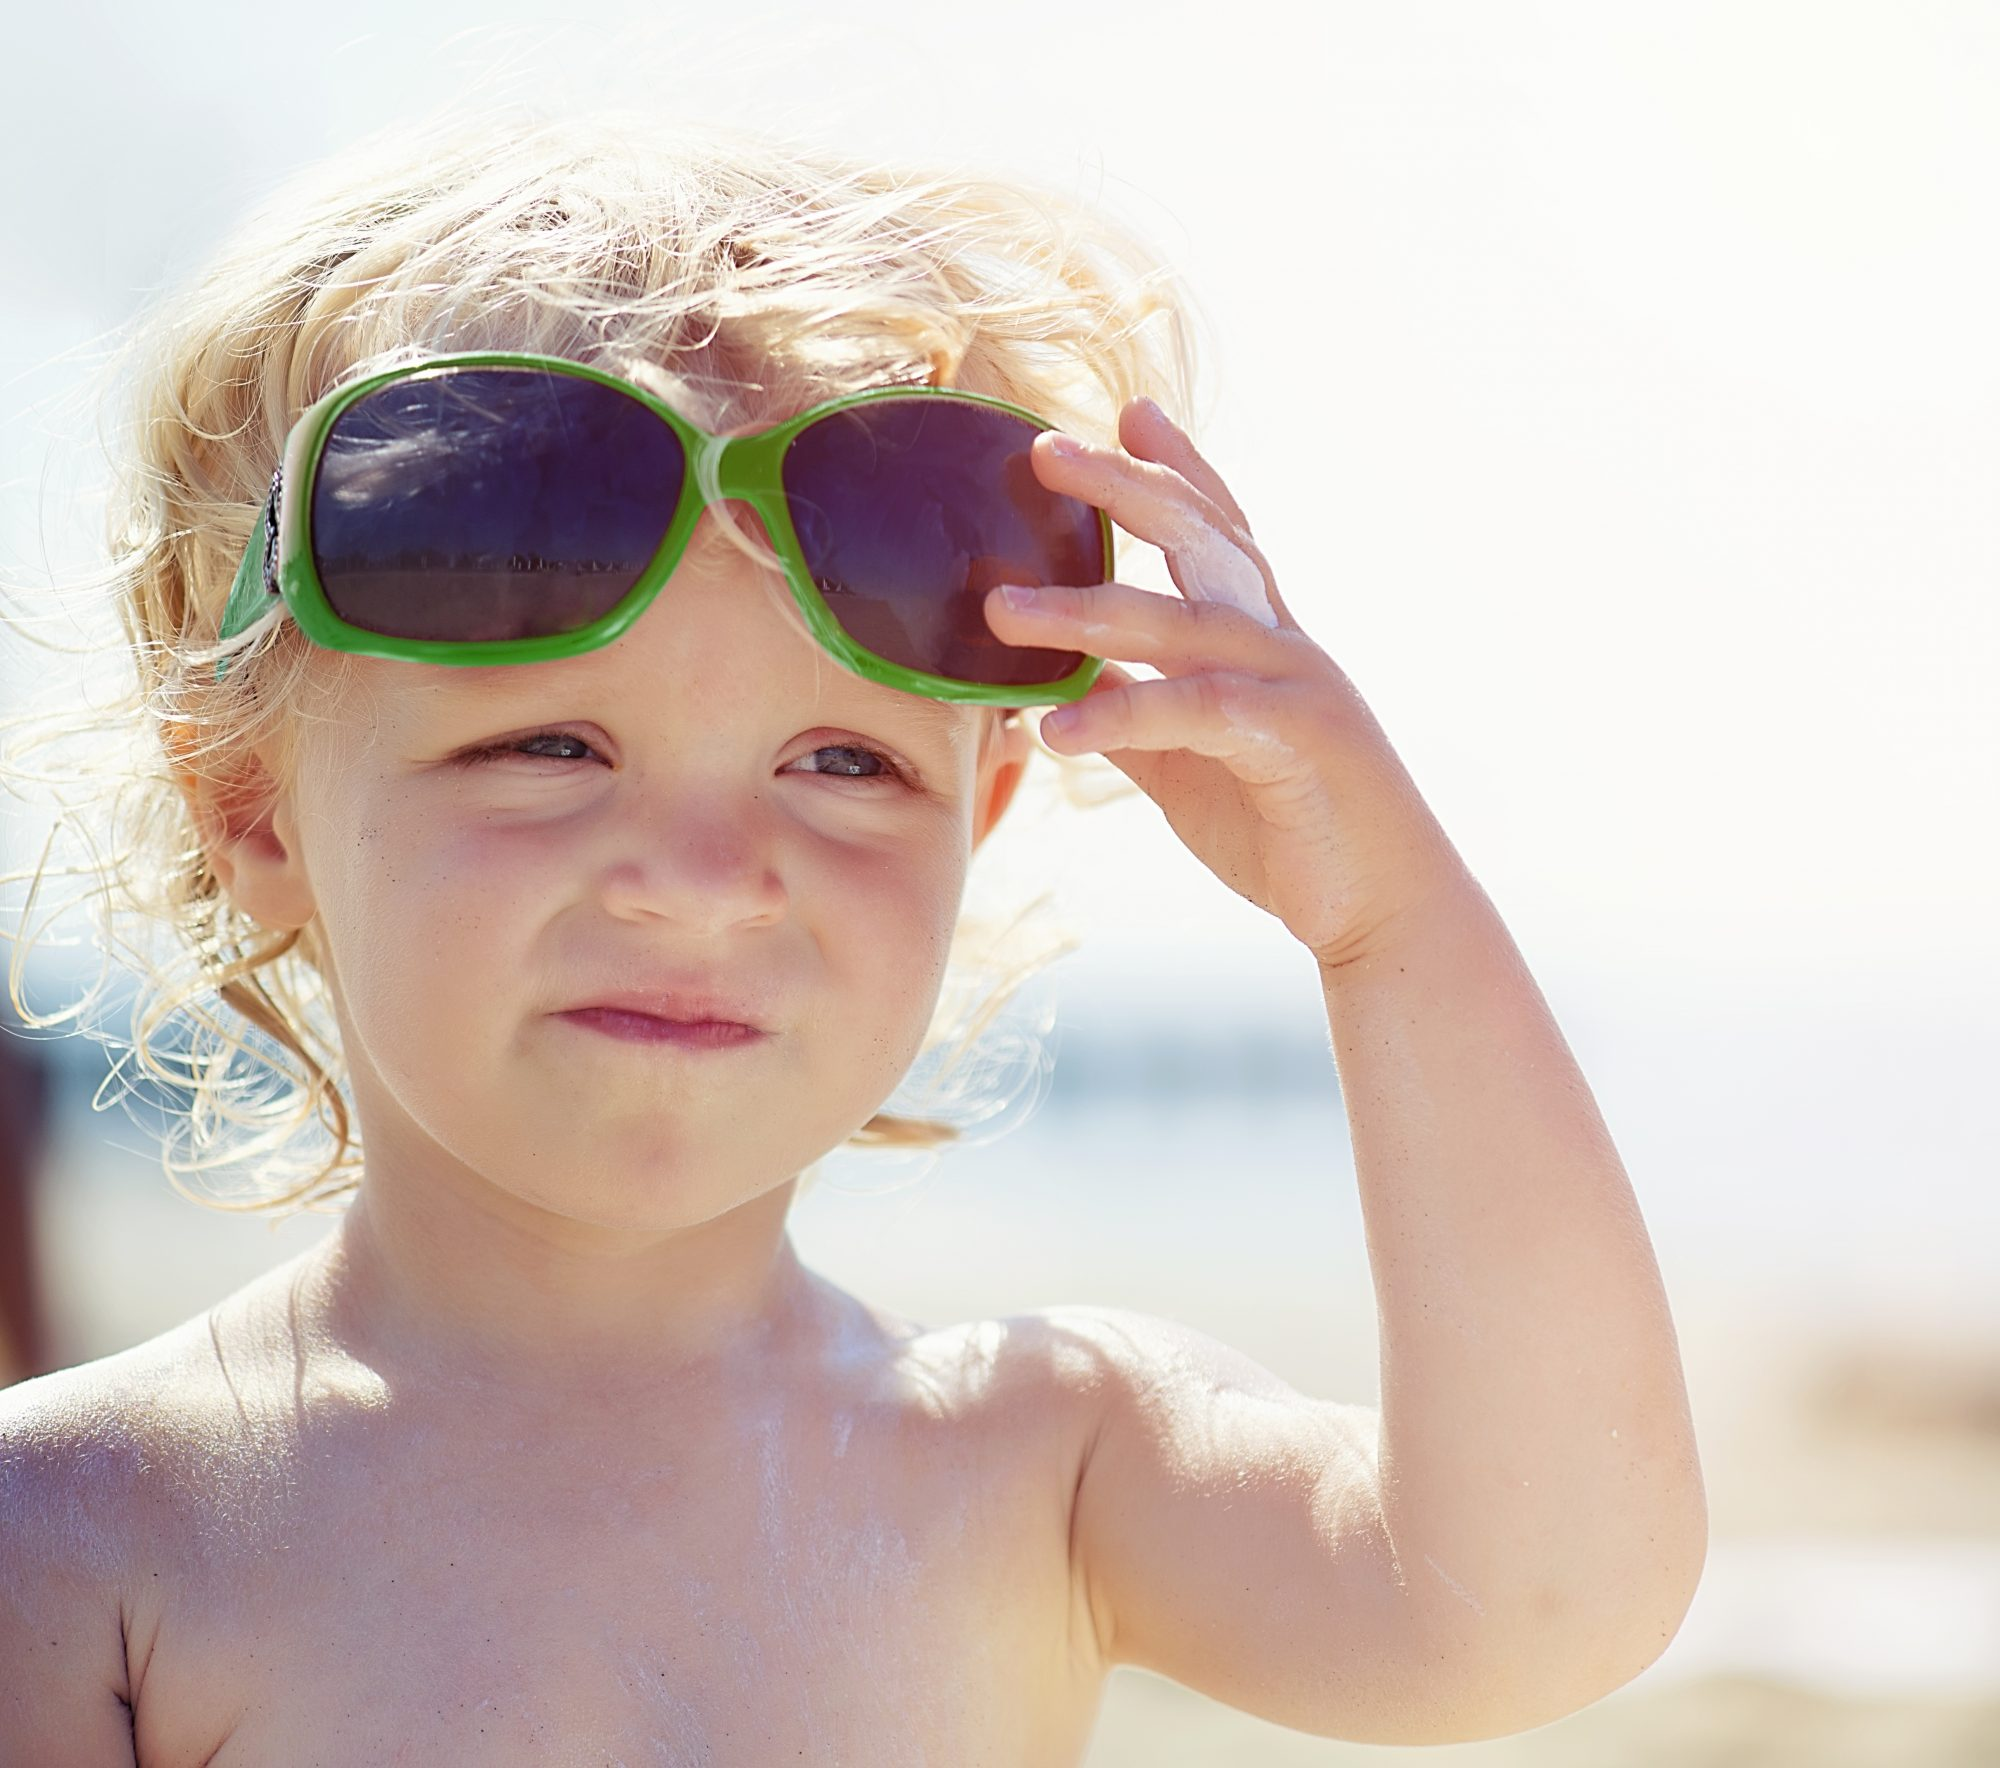 Summer kid wearing sunglasses unhappy